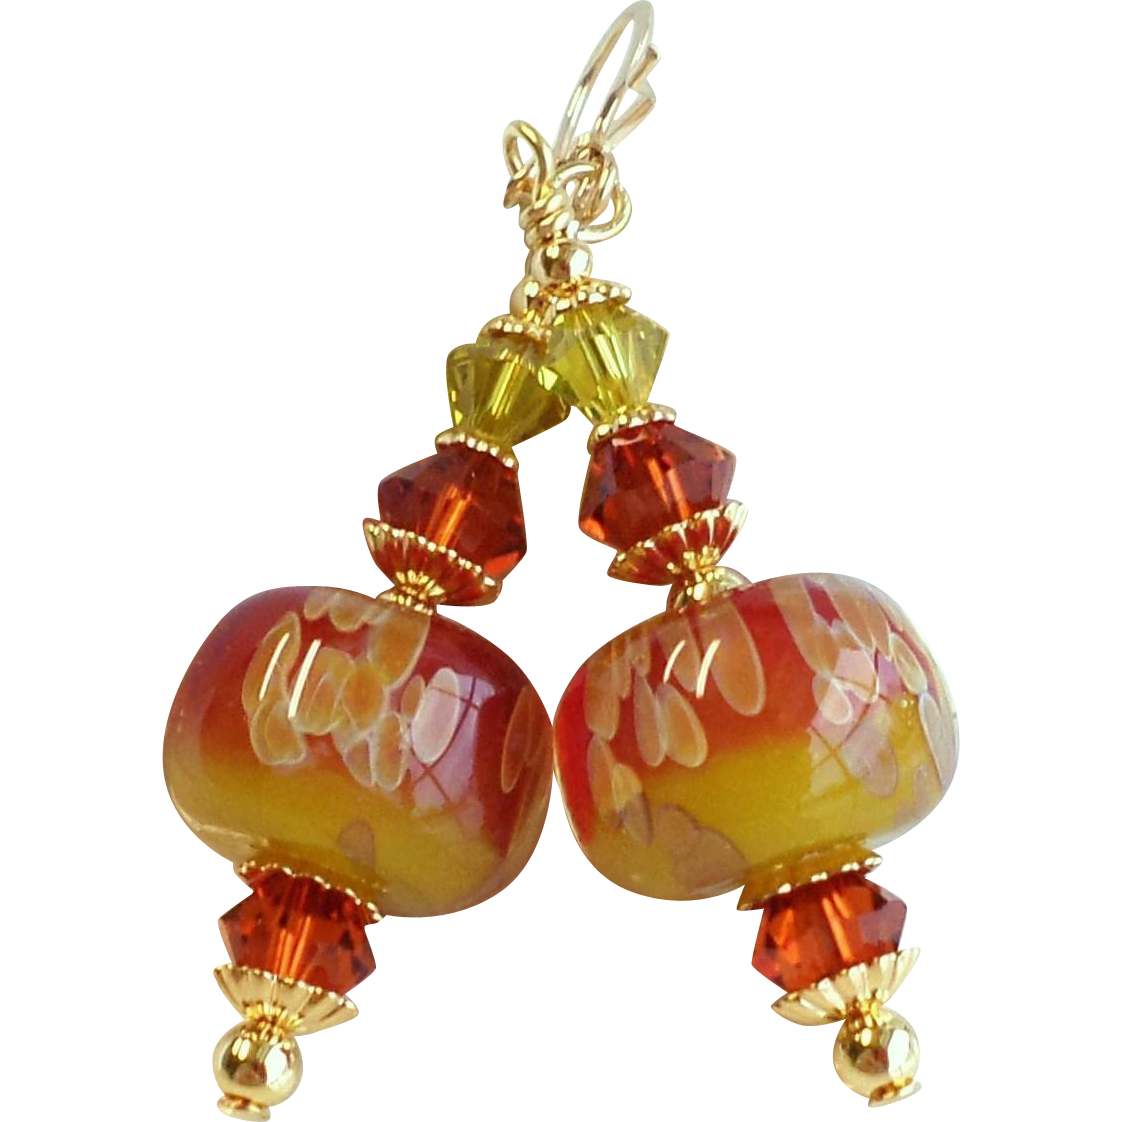 Boro Glass Earrings In Reddish Orange and Lime Green Shades